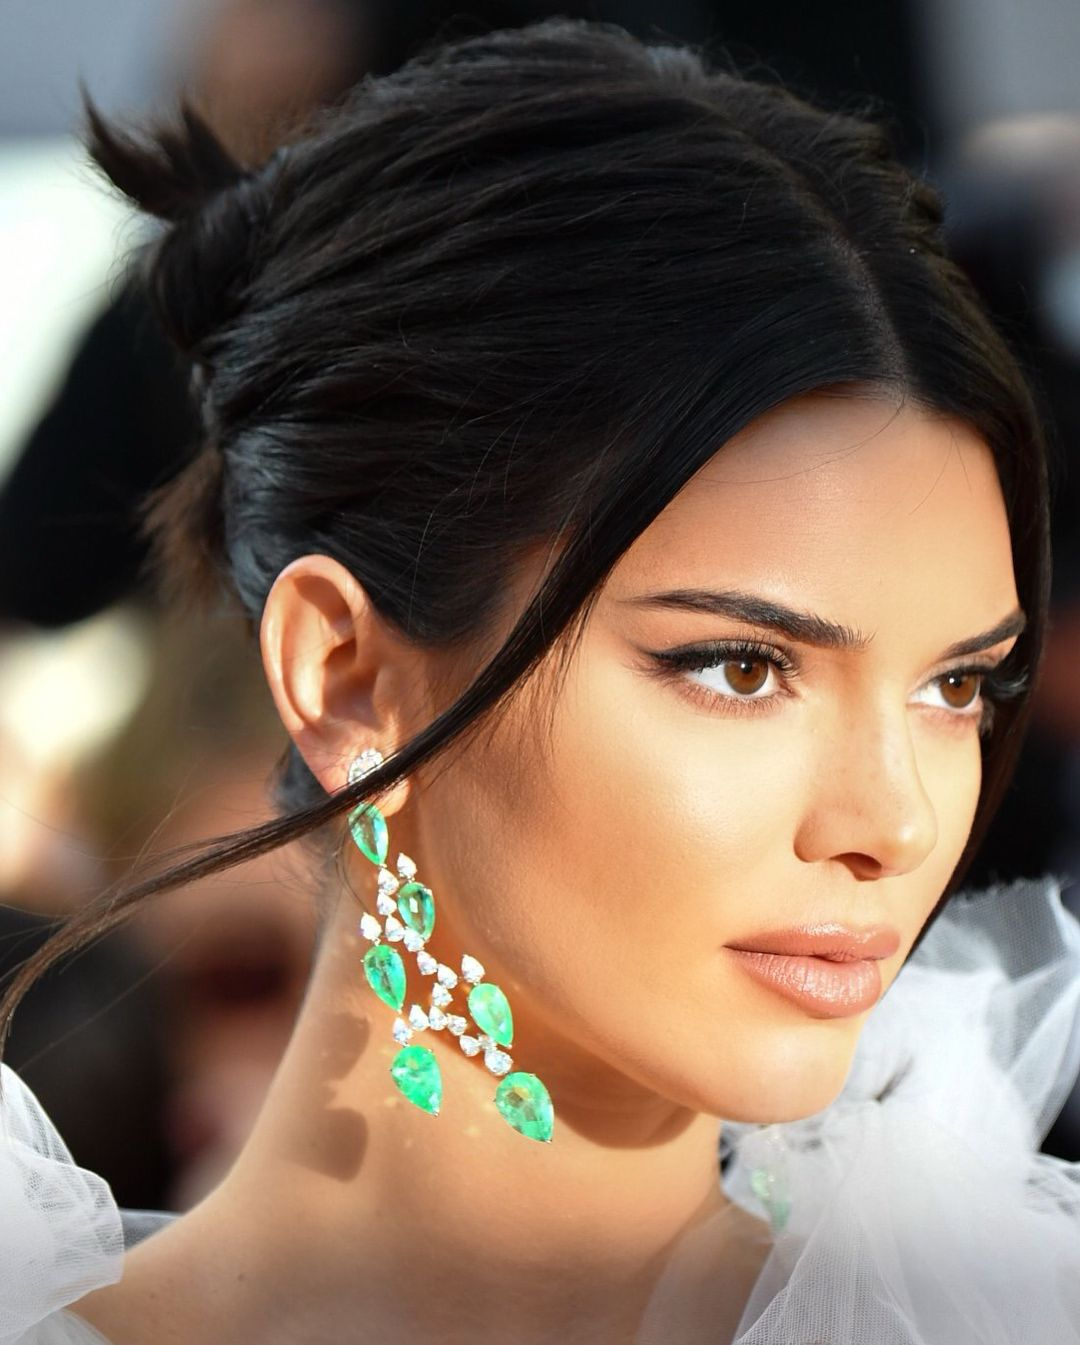 Watch Kendall Jenner. 2018-2019 celebrityes photos leaks! video